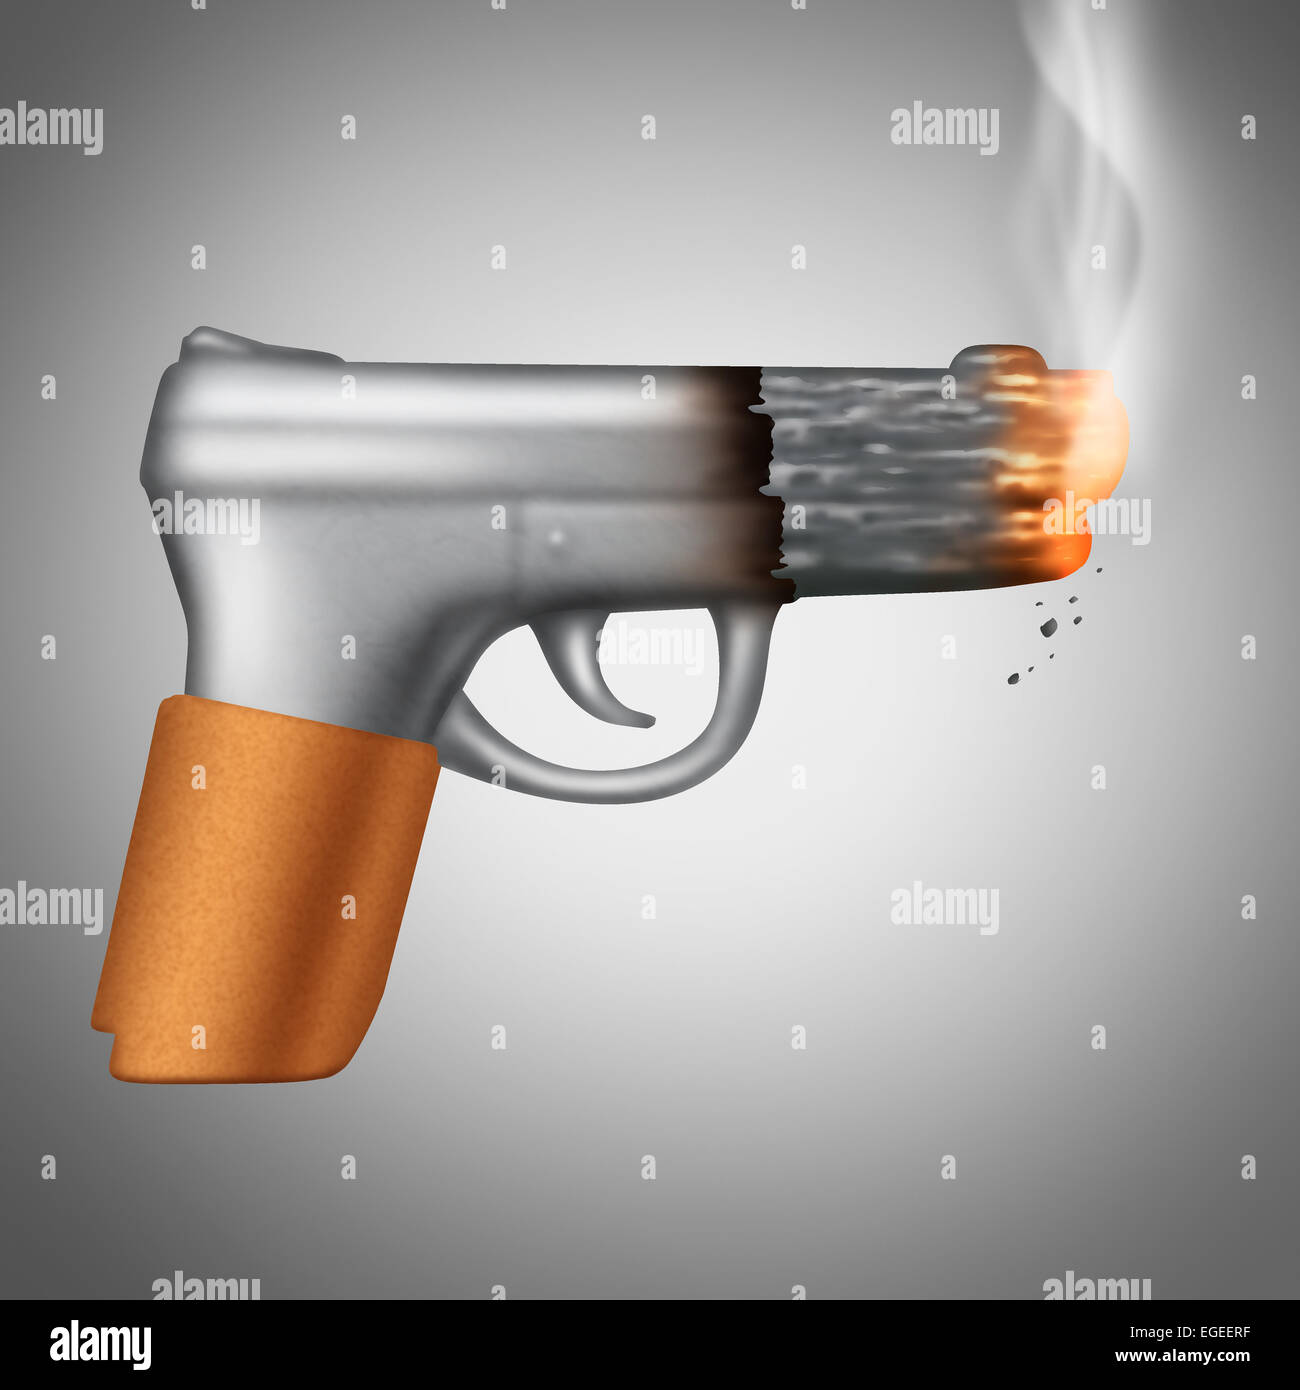 Smoking Cigarette concept as a tobacco product shaped as a lethal handgun or pistol as a health care metaphor and - Stock Image